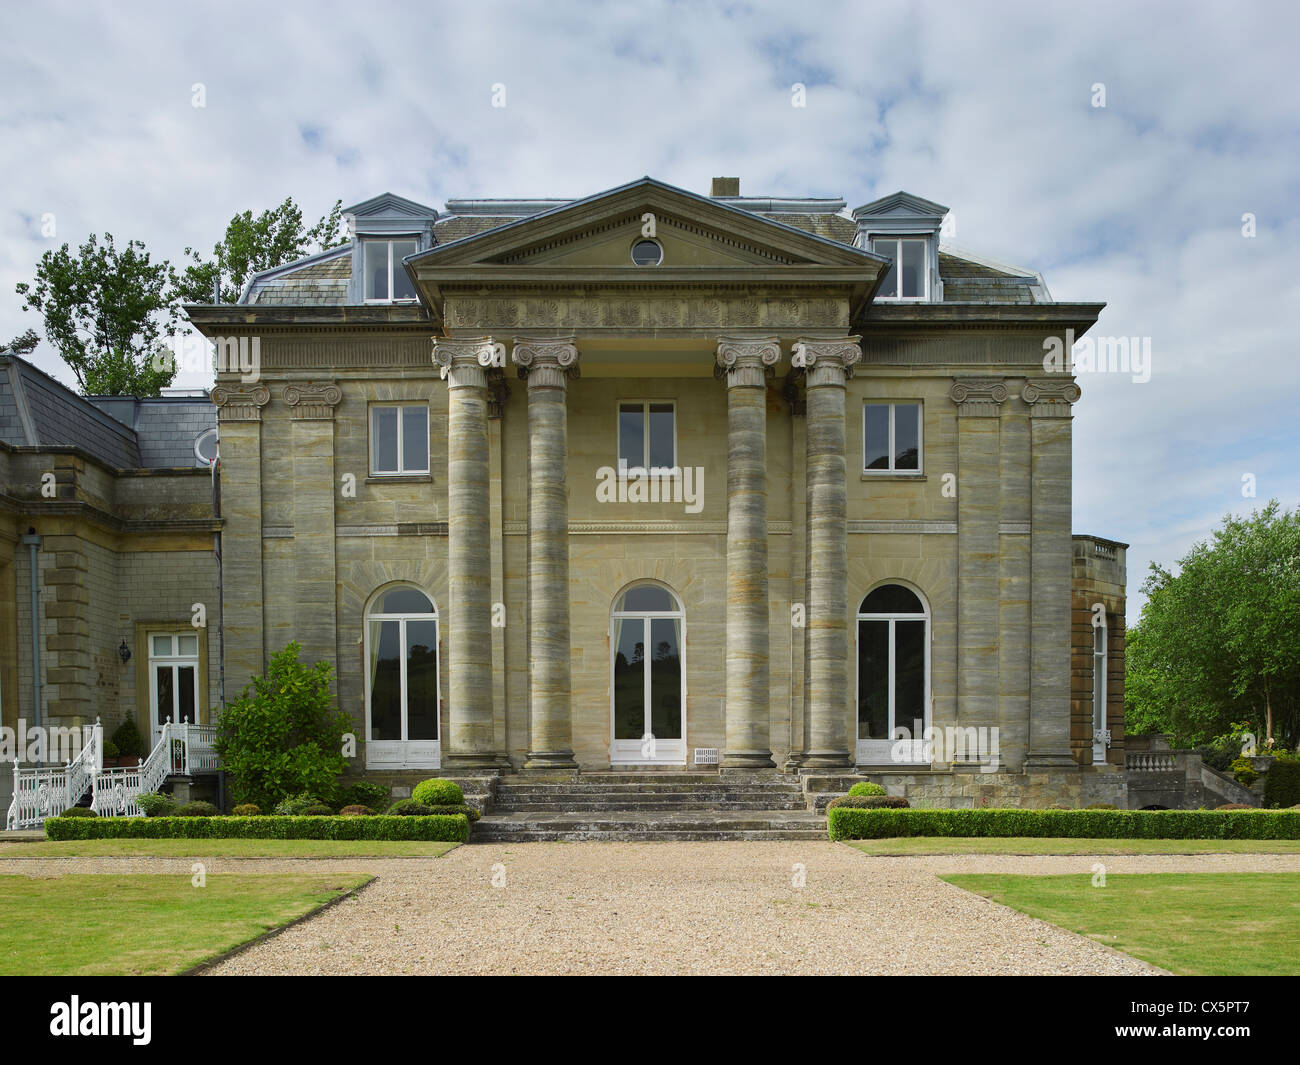 Brasted Place, Kent, by Robert Adam 1784-5 - Stock Image